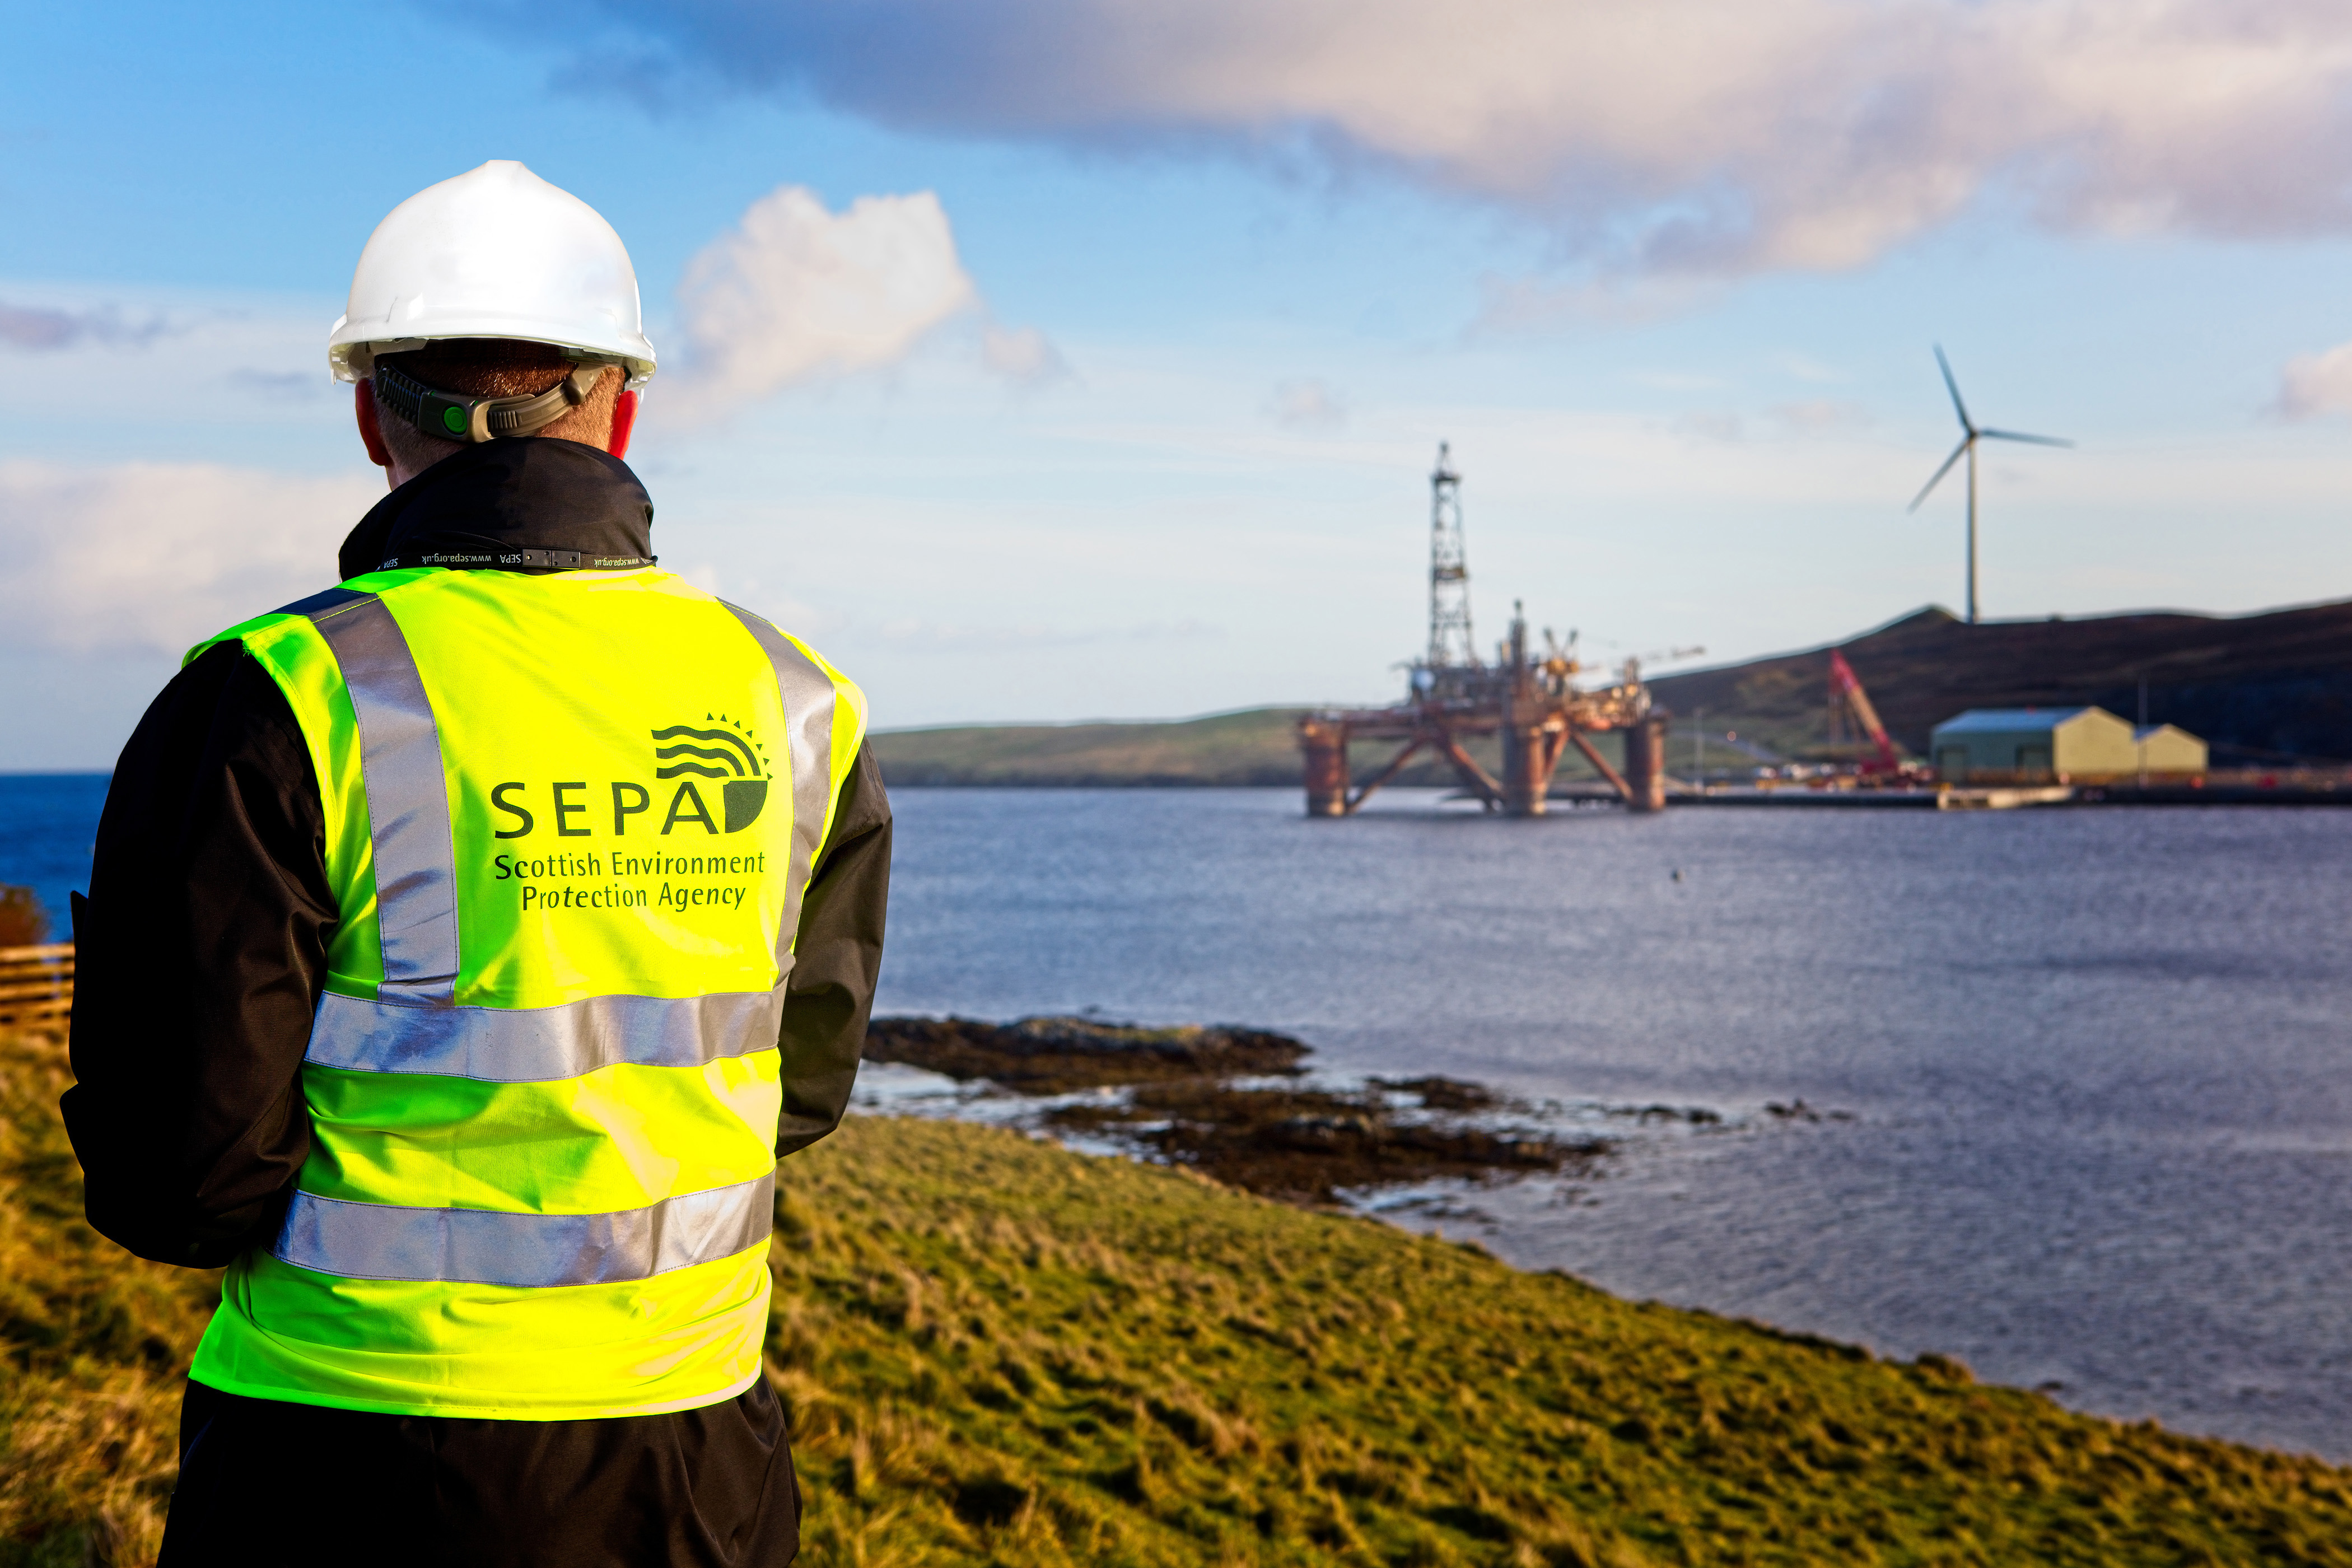 SEPA invites you to share your views on sector plan for oil and gas decommissioning